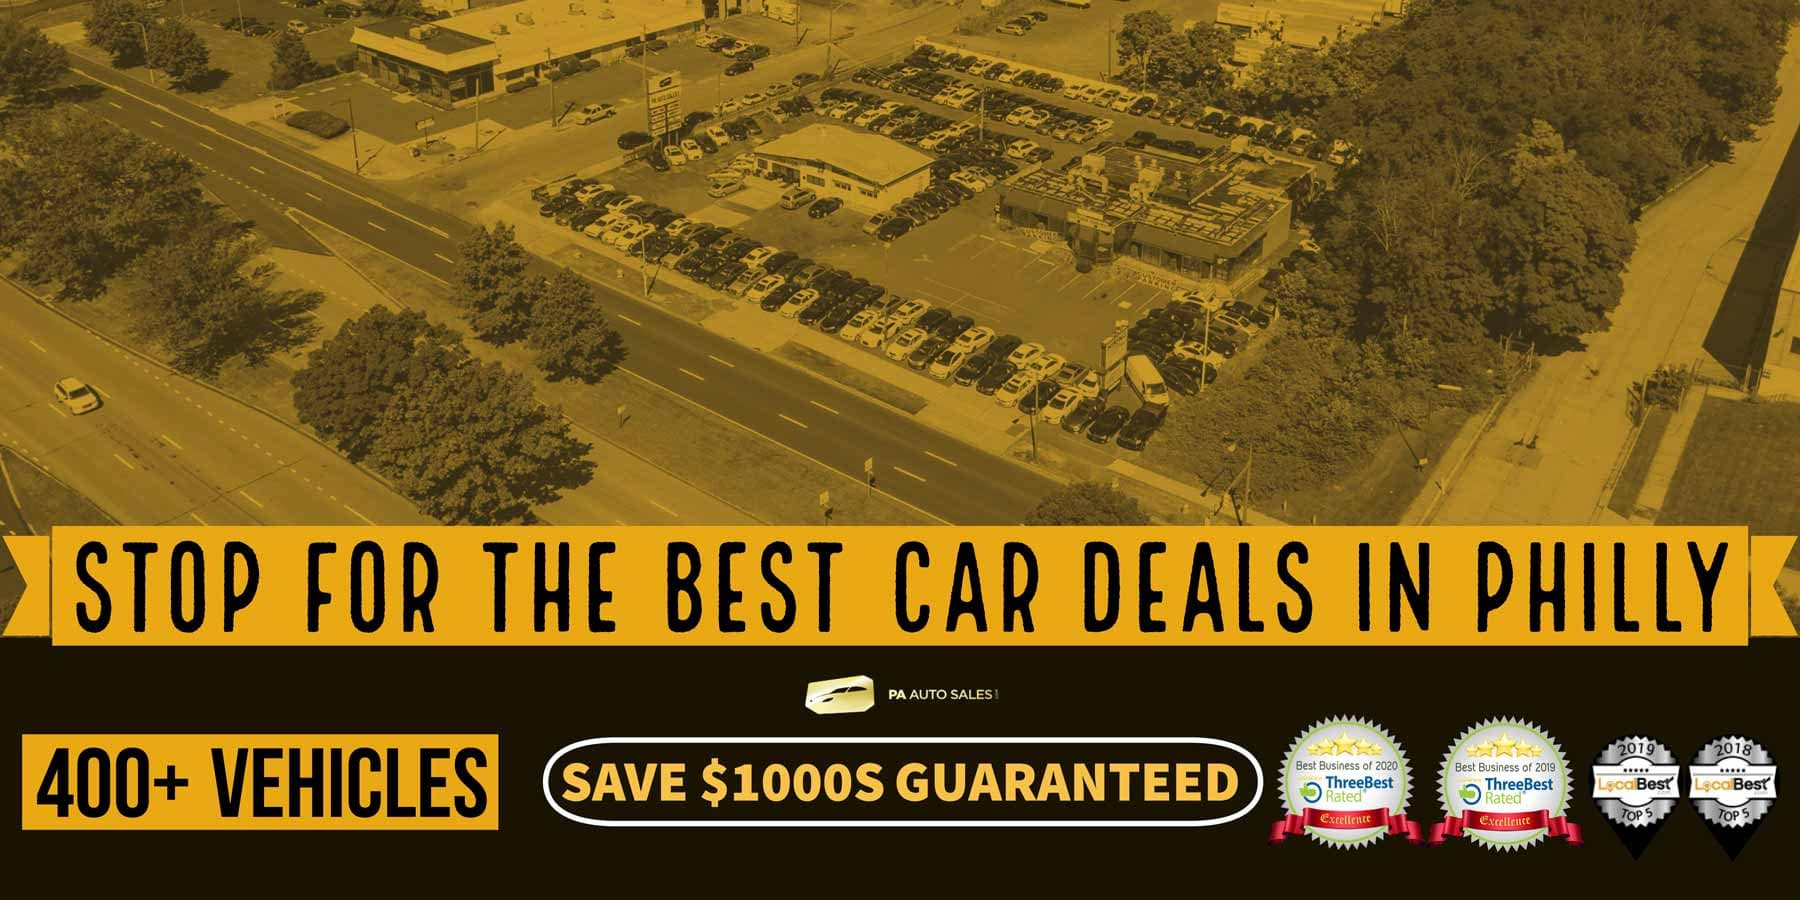 Stop for the best CAR DEALS in Philly